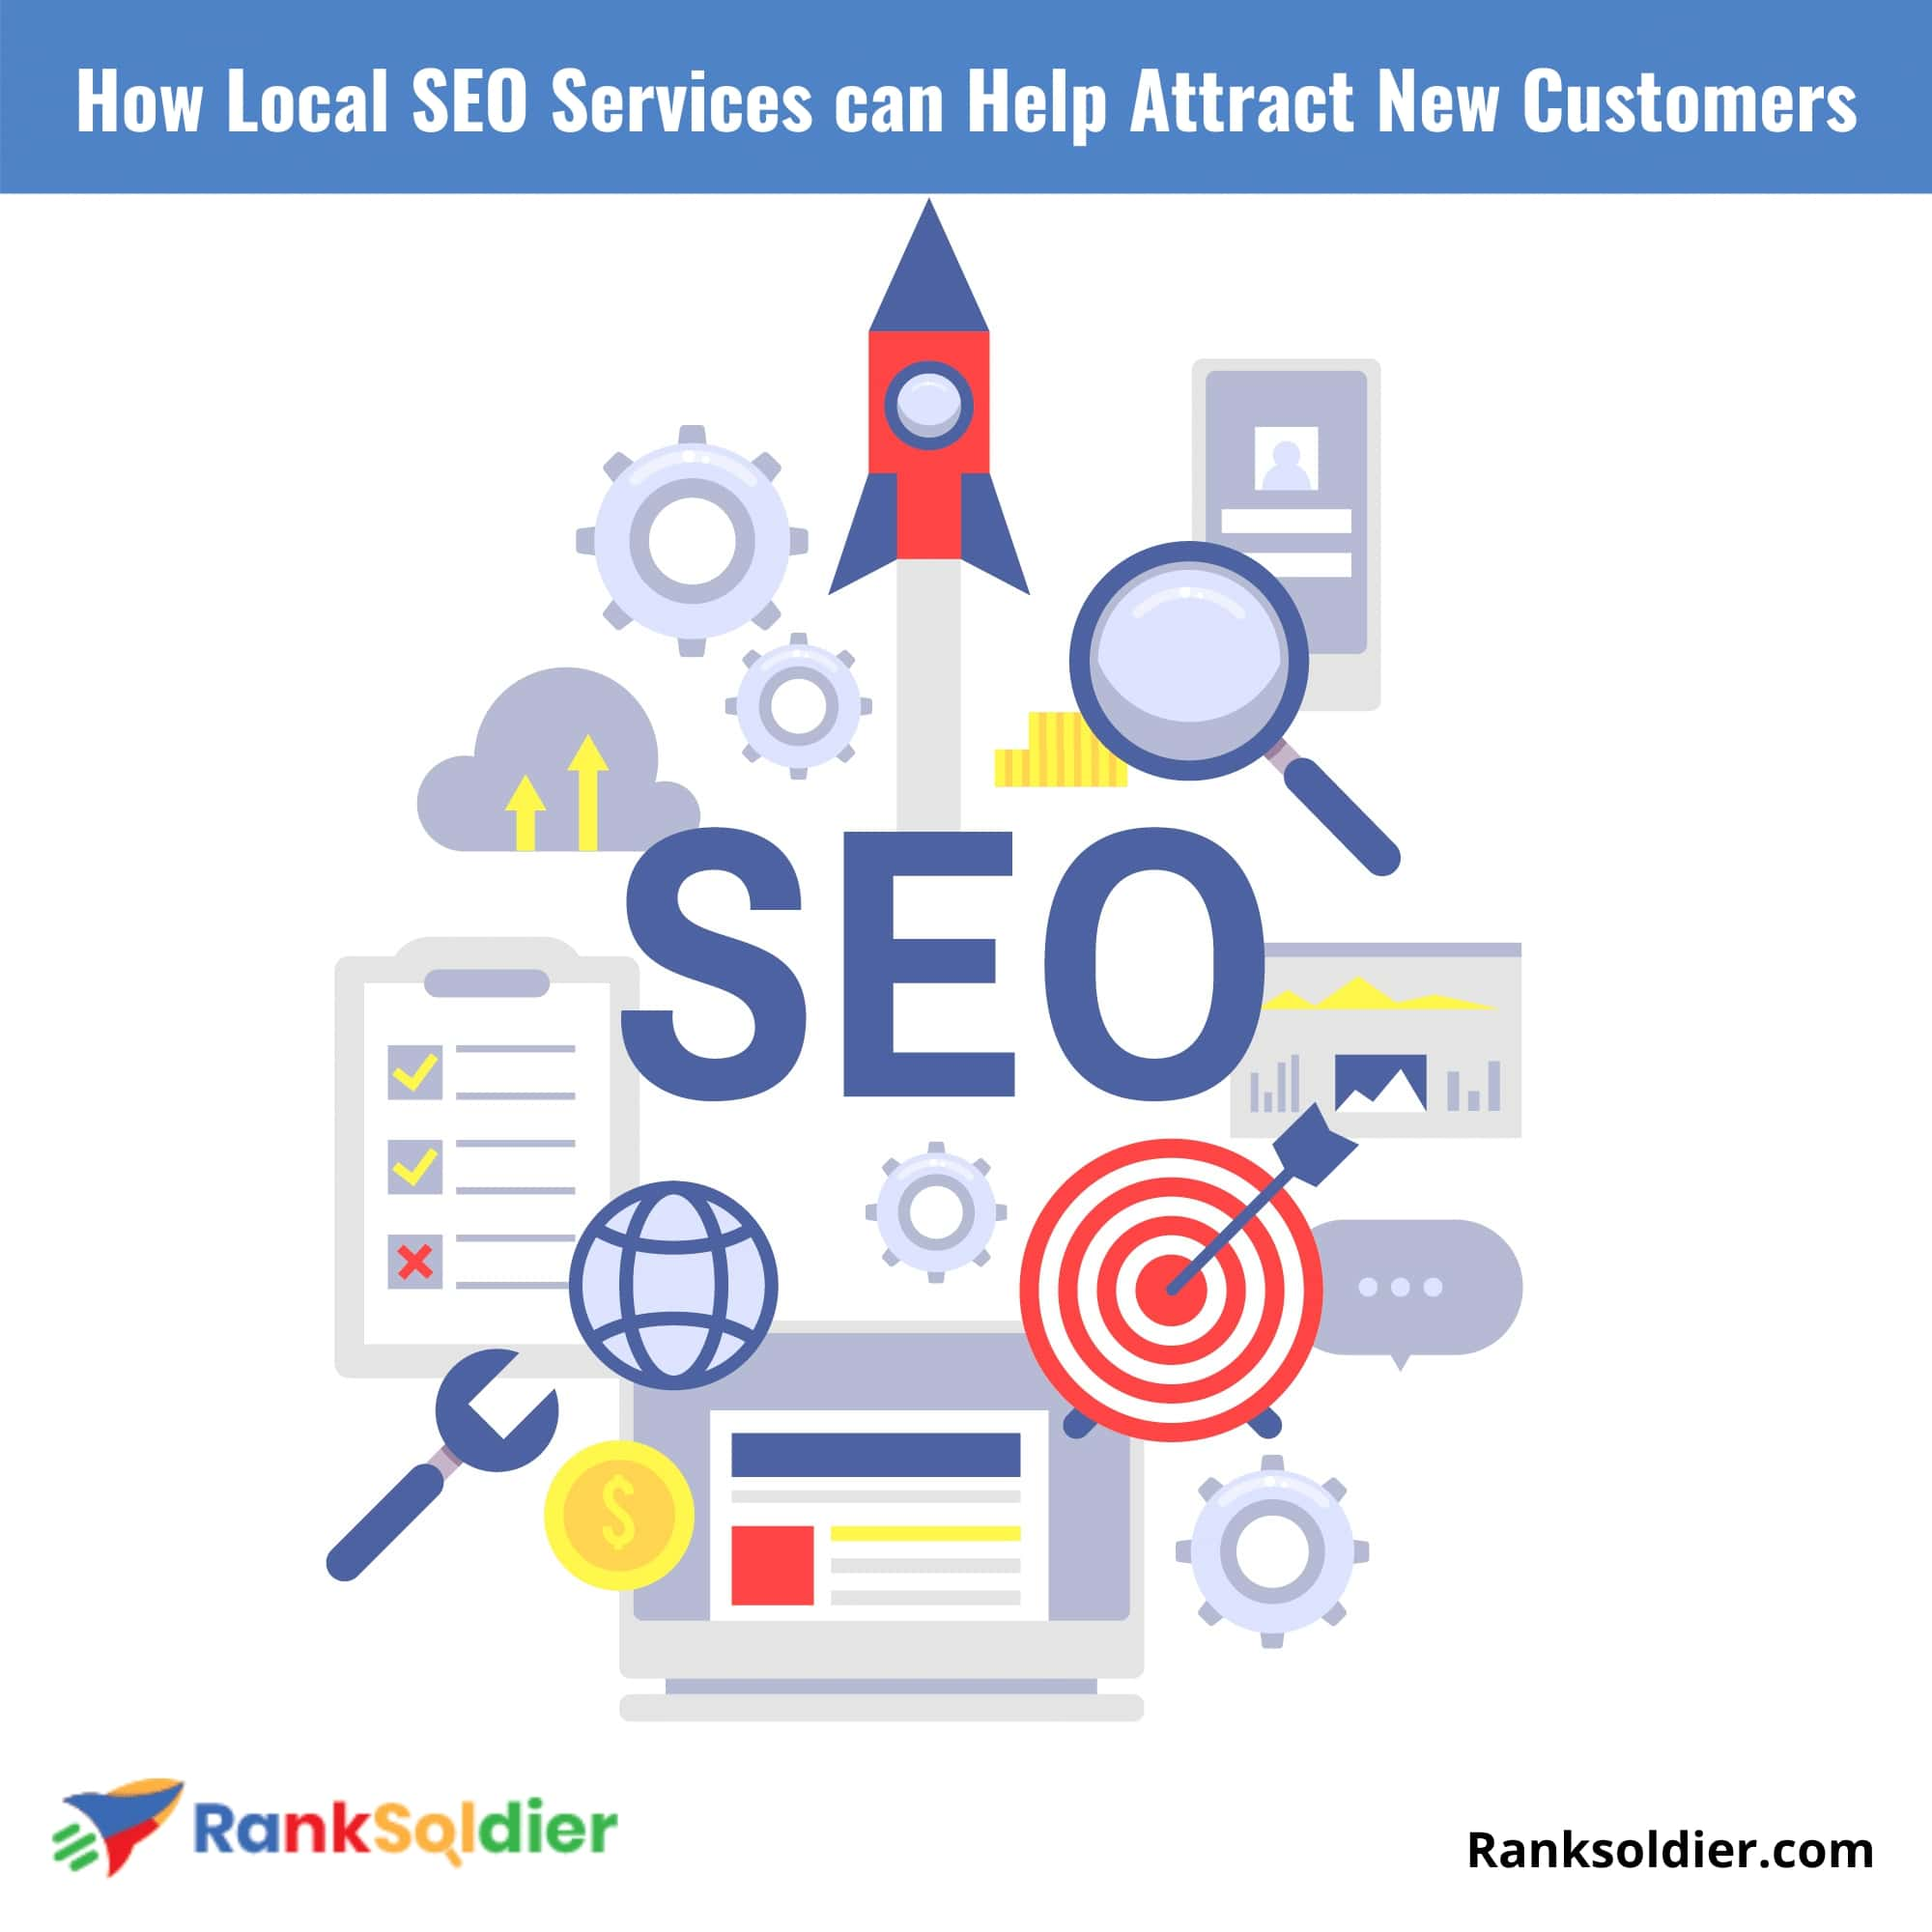 How Local SEO Services can Help Attract New Customers